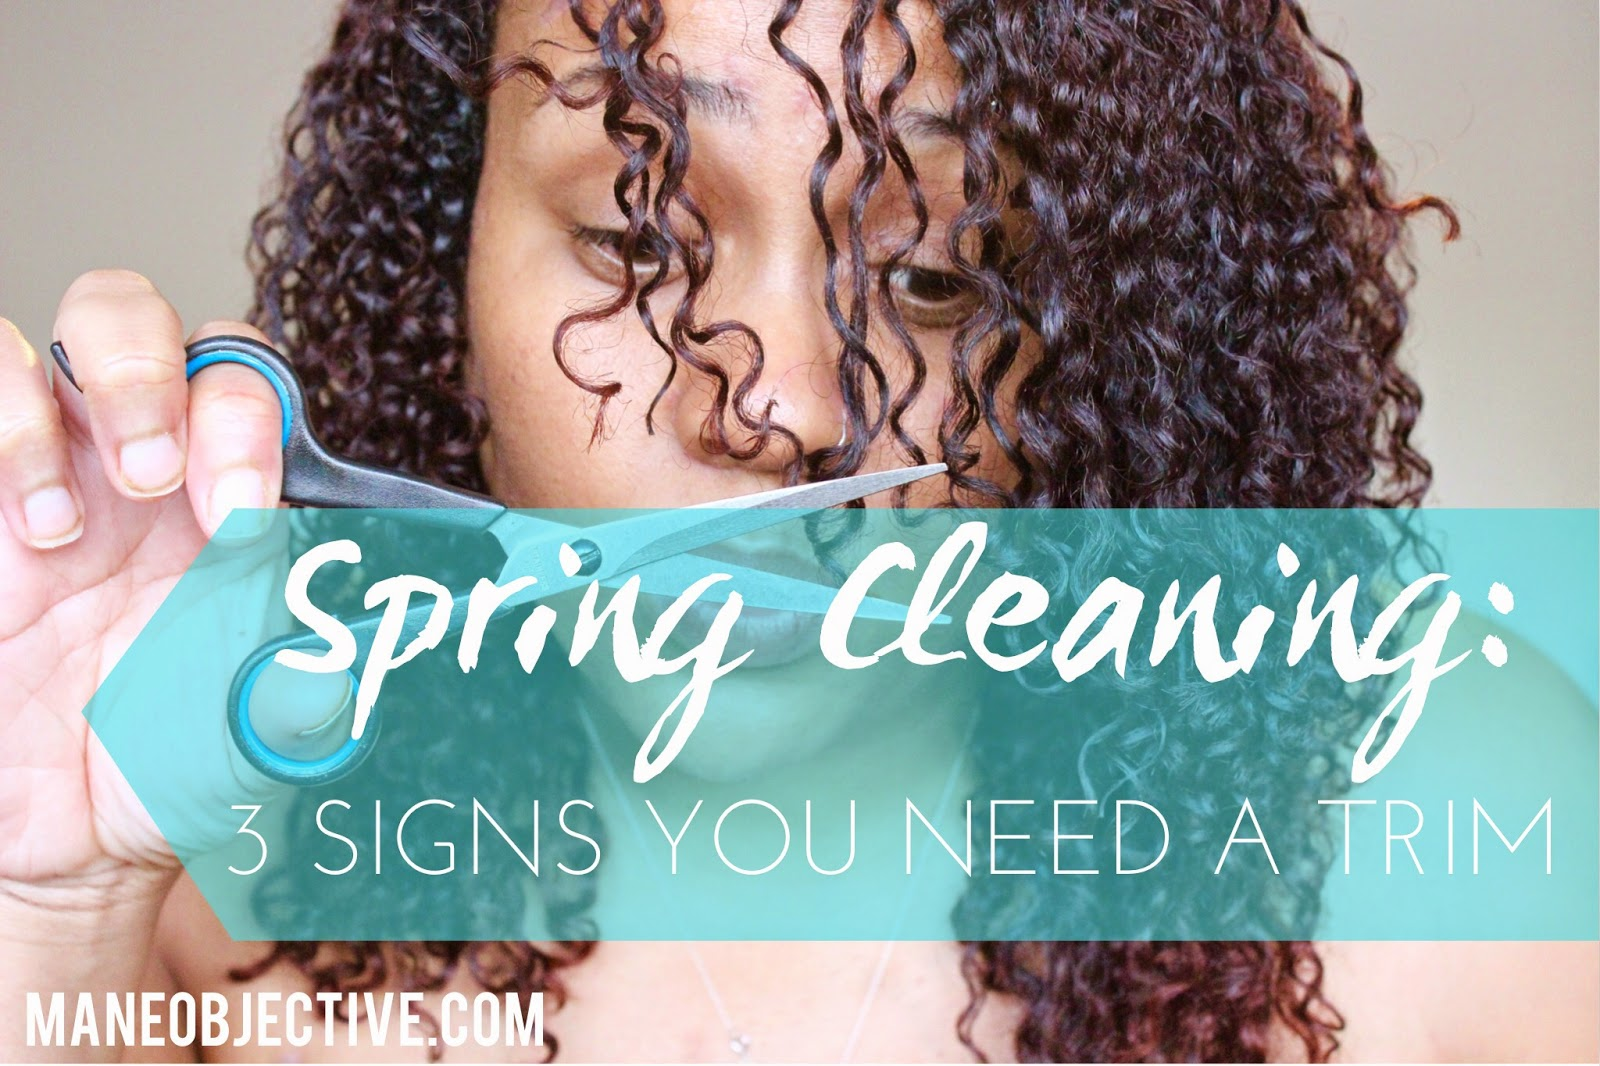 Spring Cleaning: 3 Signs You Need a Trim this Season